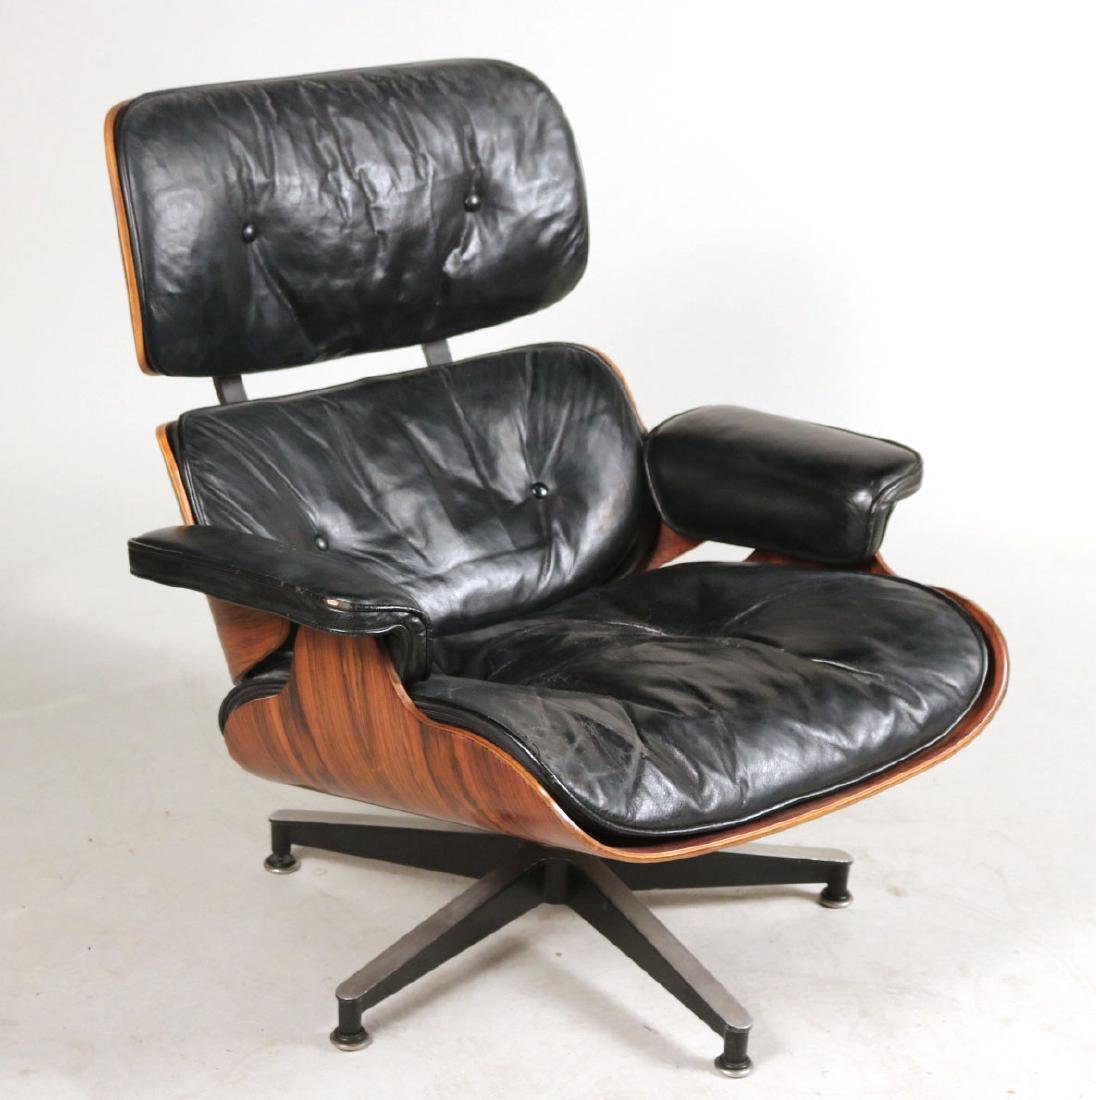 Herman Miller Eames Lounge Chair and Ottoman - 2